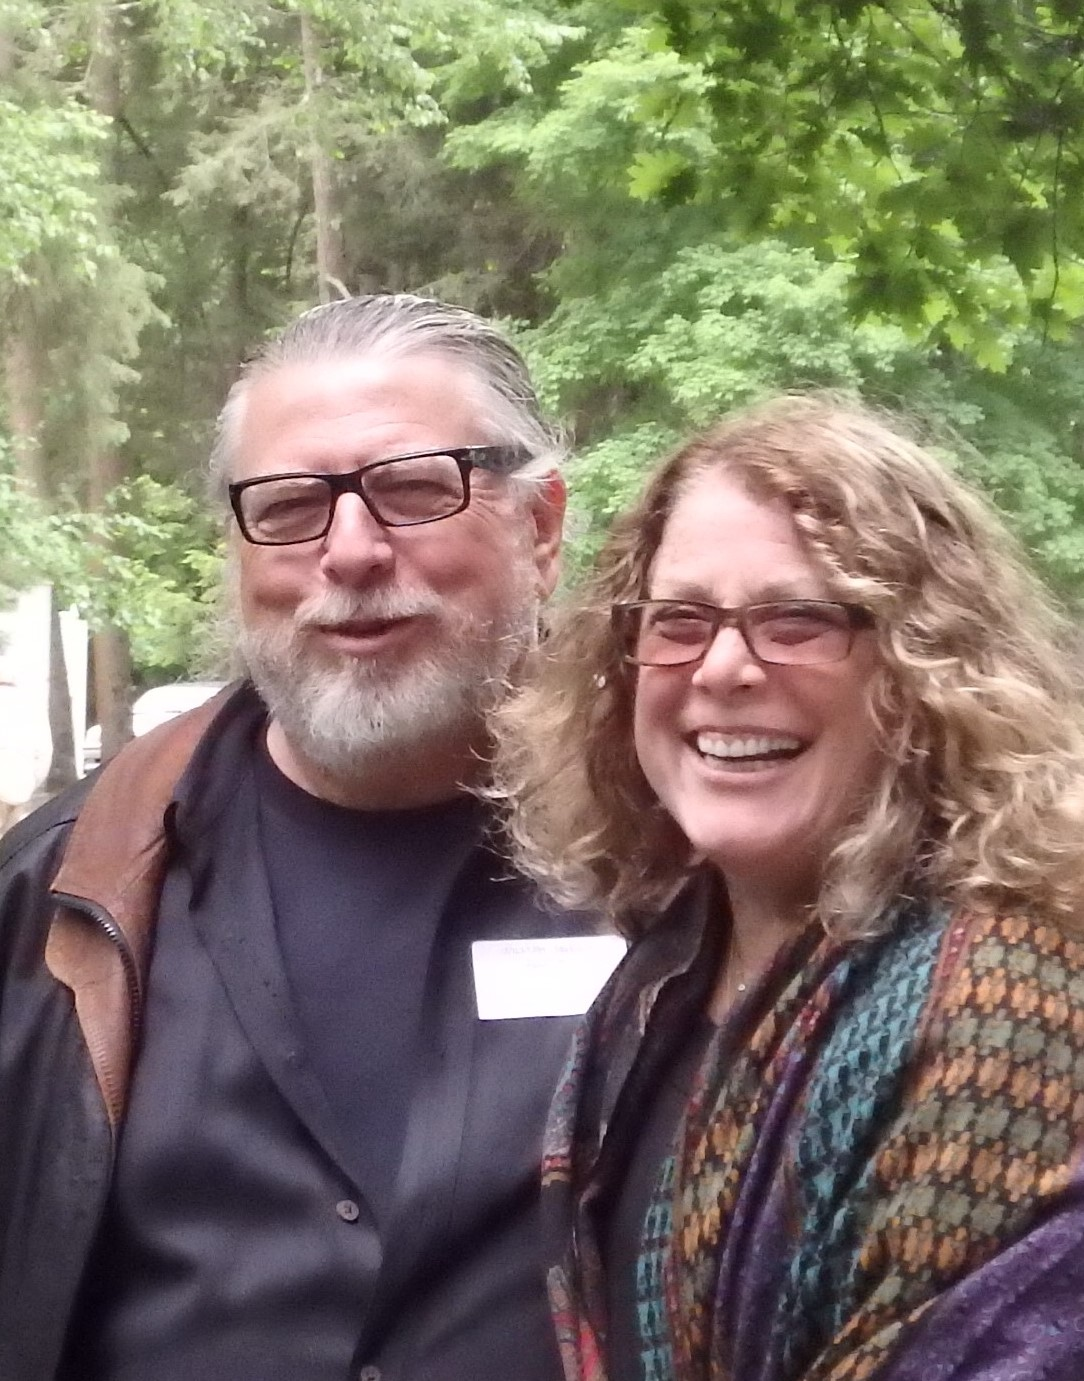 Bill and his wife Linda Simon (a painter) - The Mount, Lenox, MA 2016